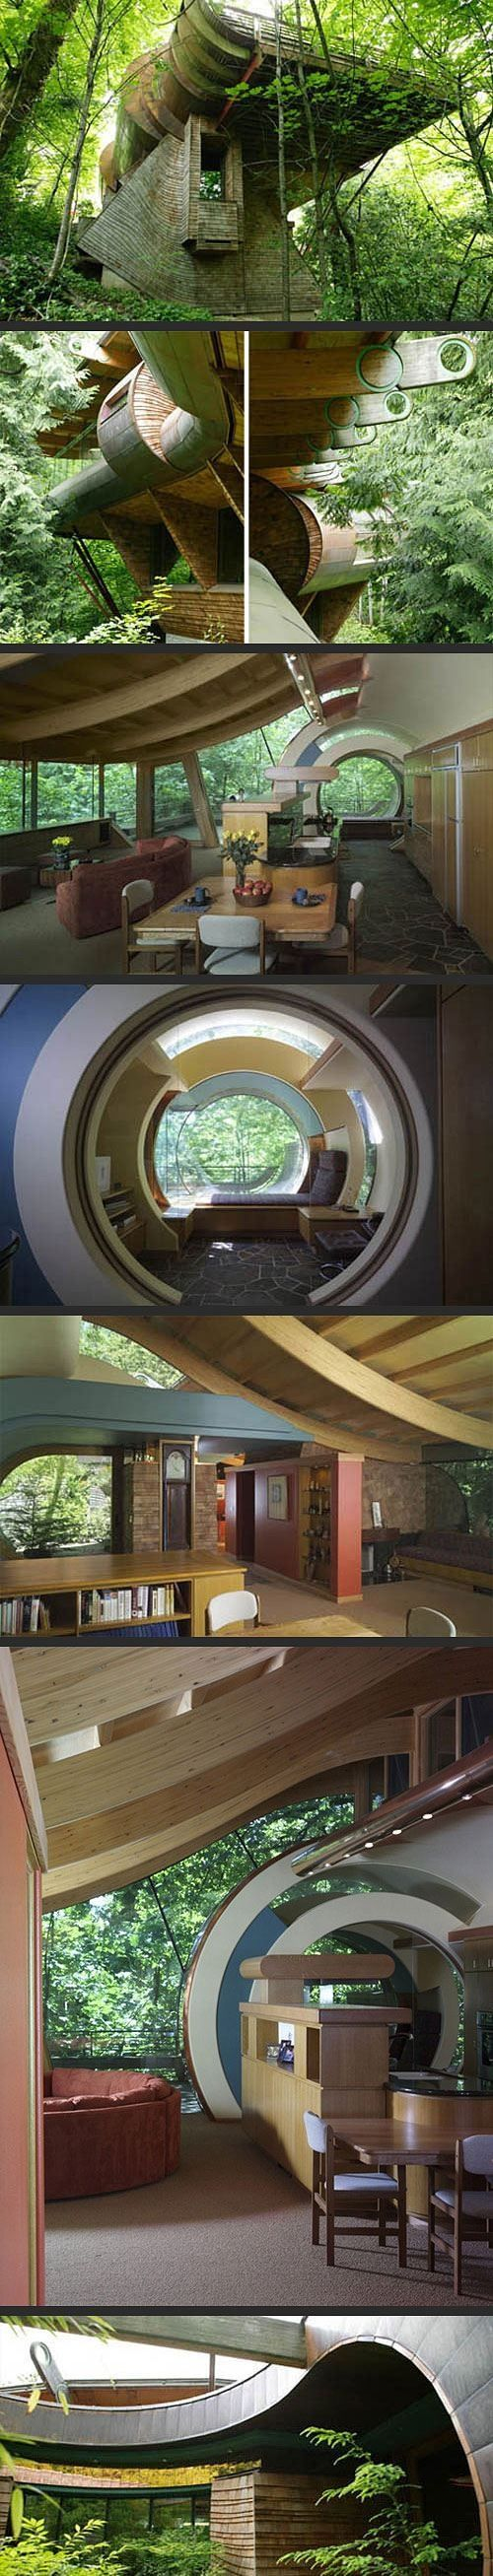 This is such a cool tree house that I would love to live in